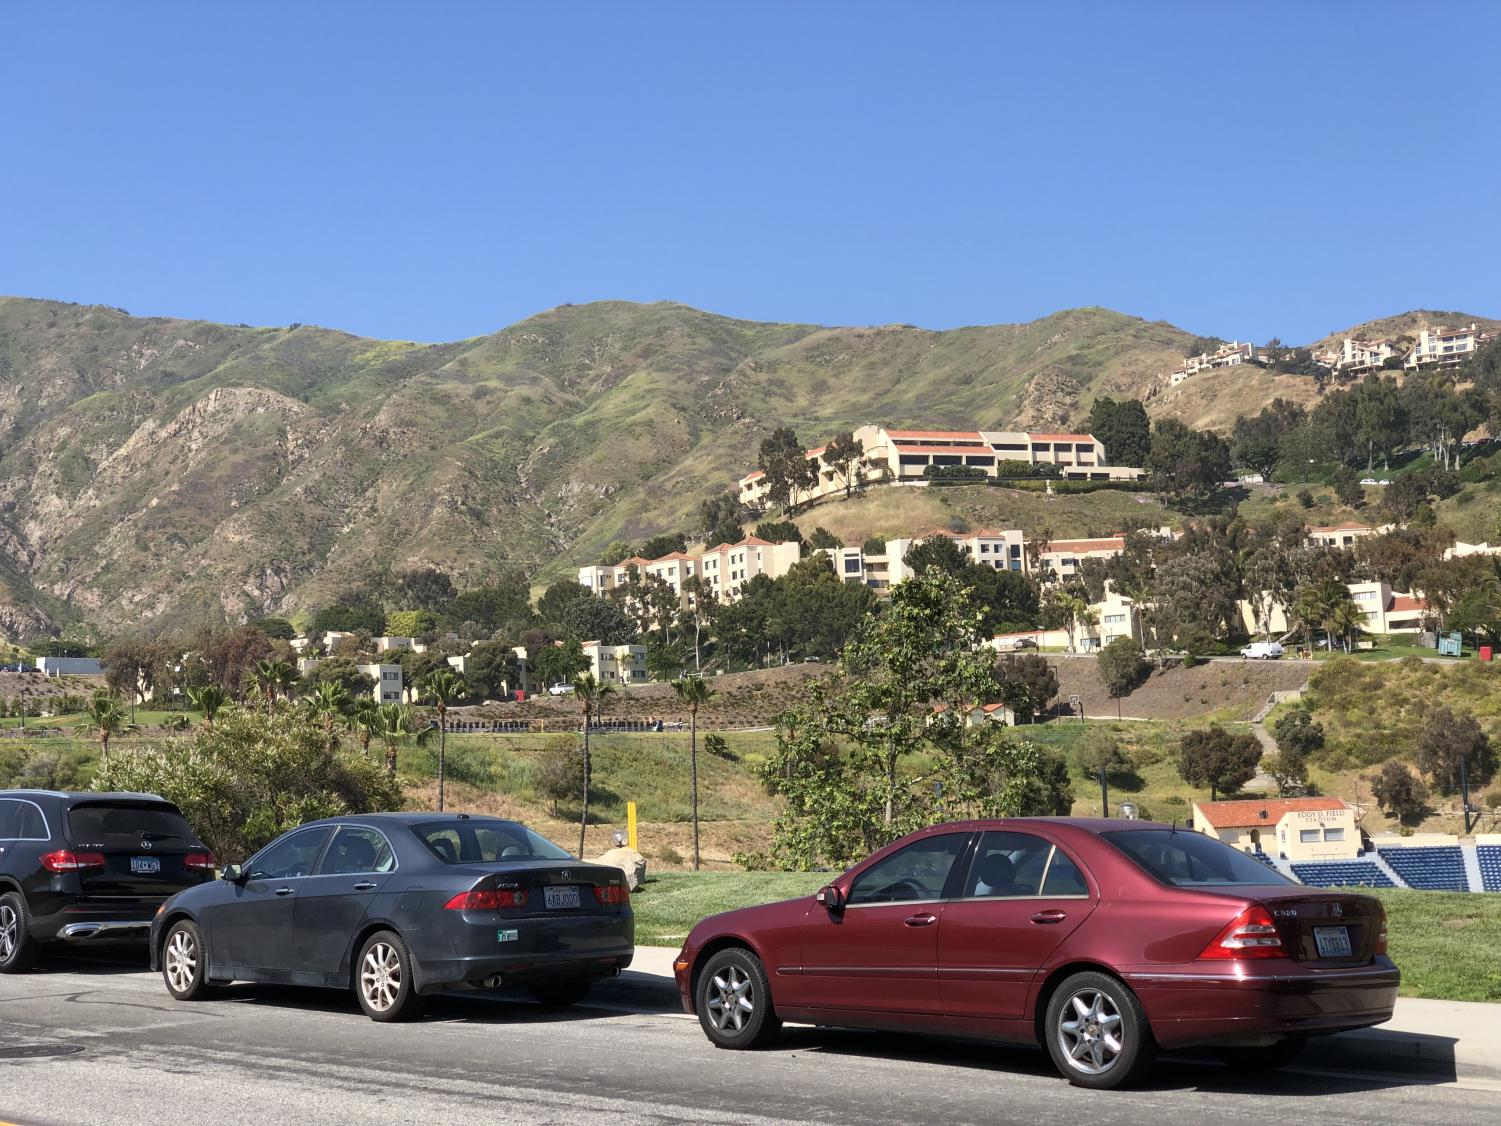 I had the great opportunity to visit two colleges I'd hope to attend, Pepperdine University and Grand Canyon University